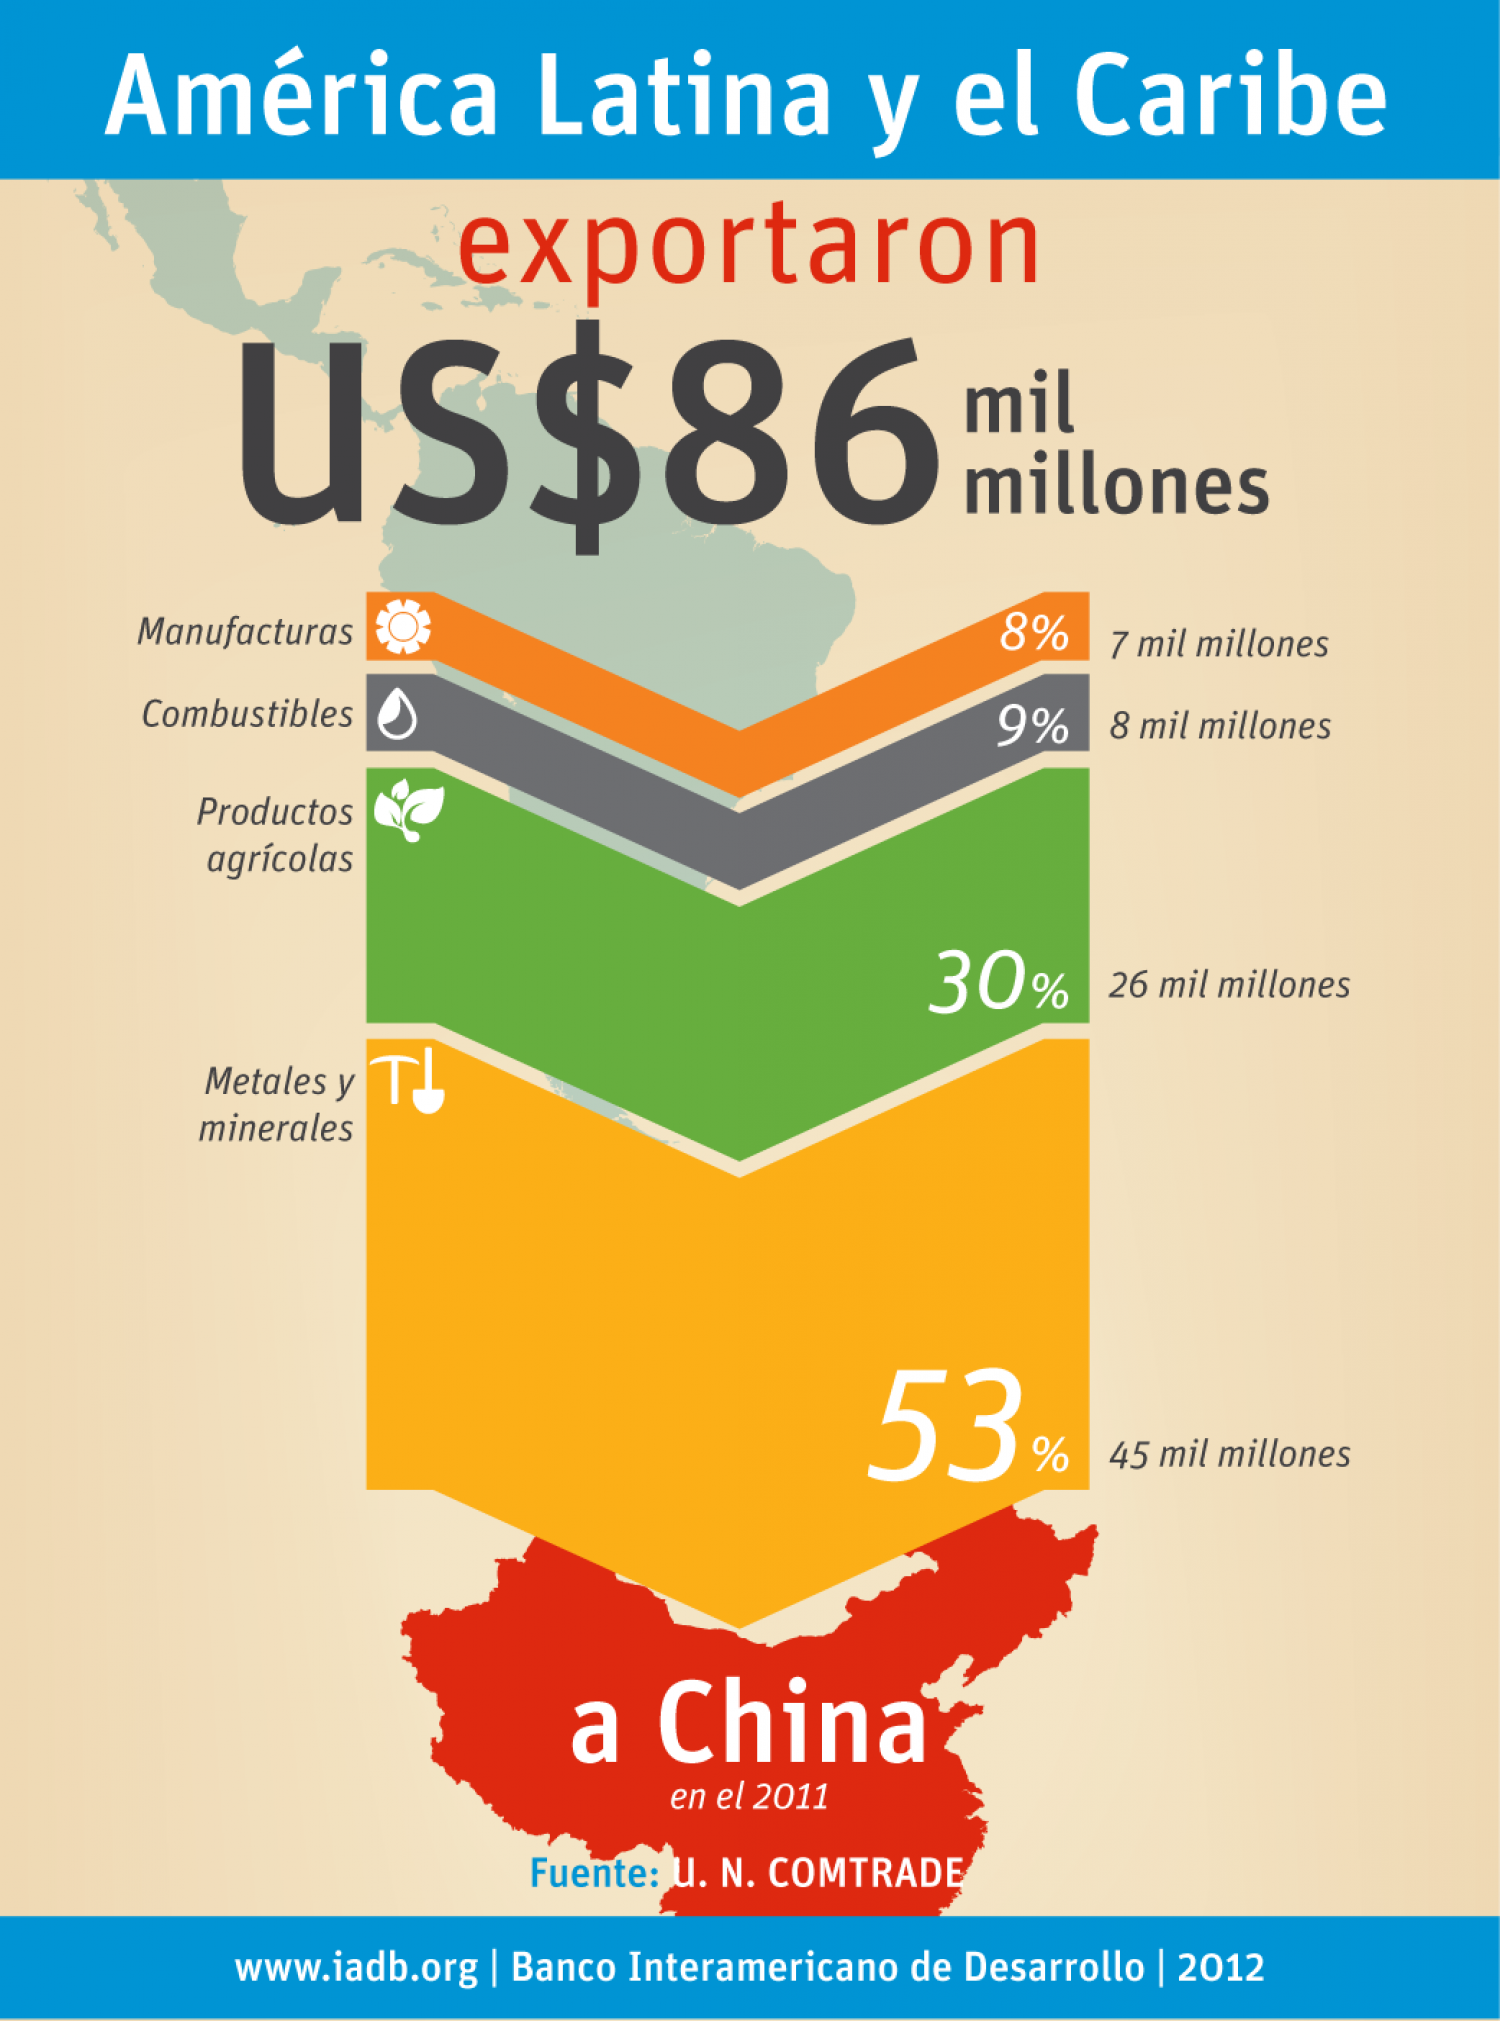 Qué exportamos a China? Infographic